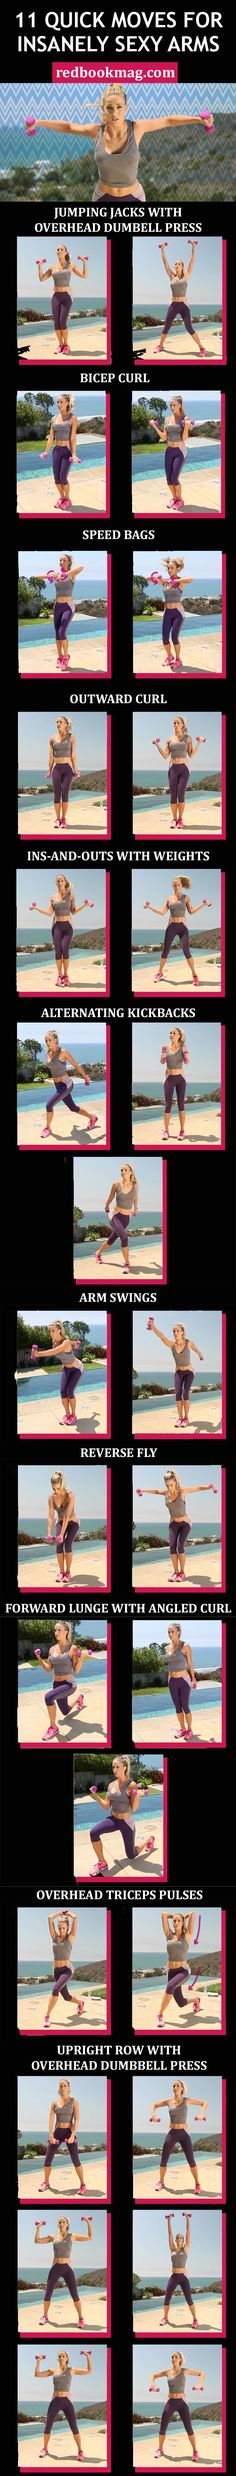 SEXY ARM WORKOUT FOR WOMEN: Grab a set of 2- to 3-pound dumbbells, and do 20 to 30 reps of each move in quick succession to tone your arms, back, chest, and legs. Repeat the entire sequence two to three times to get toned arms fast! Click through for the entire arm workout with weights that you can do at home or at the gym.